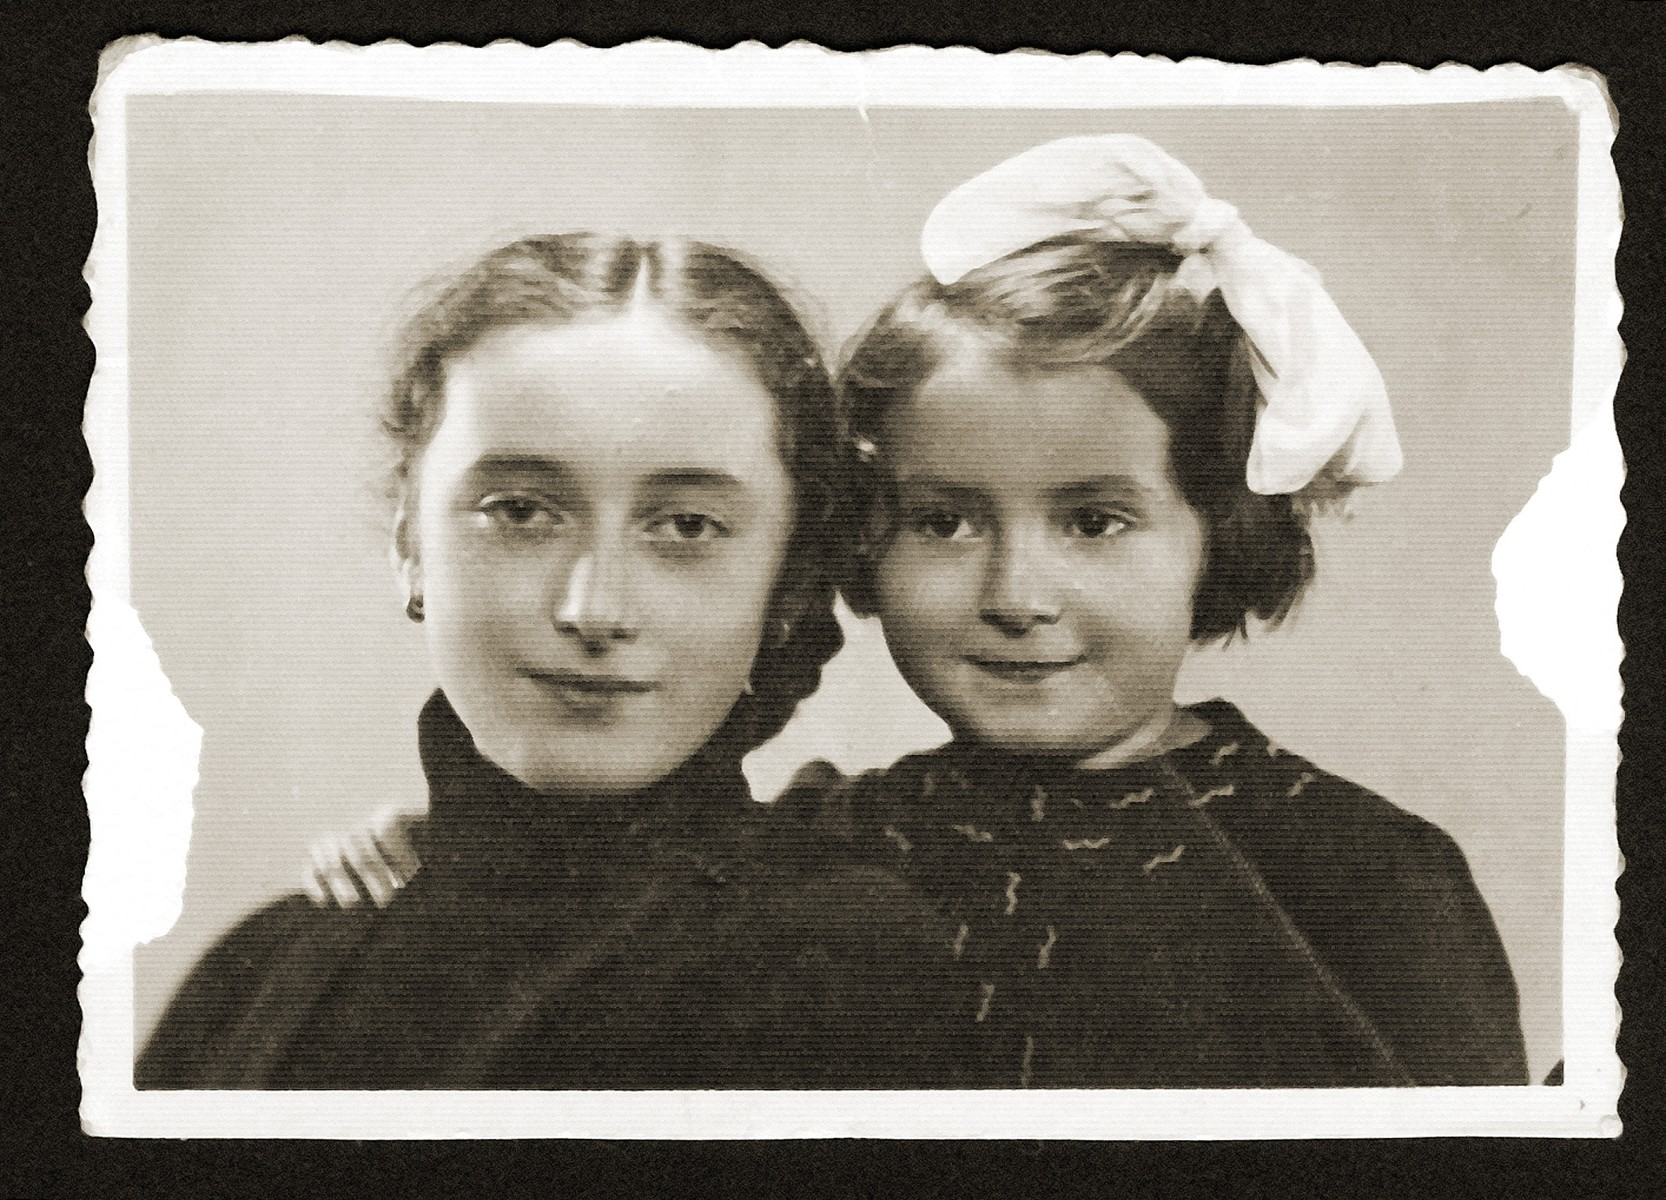 Studio portrait of two Jewish girls in the Bedzin ghetto.  Pictured are Maniusia Gipsman (left) and her cousin, Dina.  Both girls perished in Auschwitz.  Maniusia was 13 years old at the time of her death.